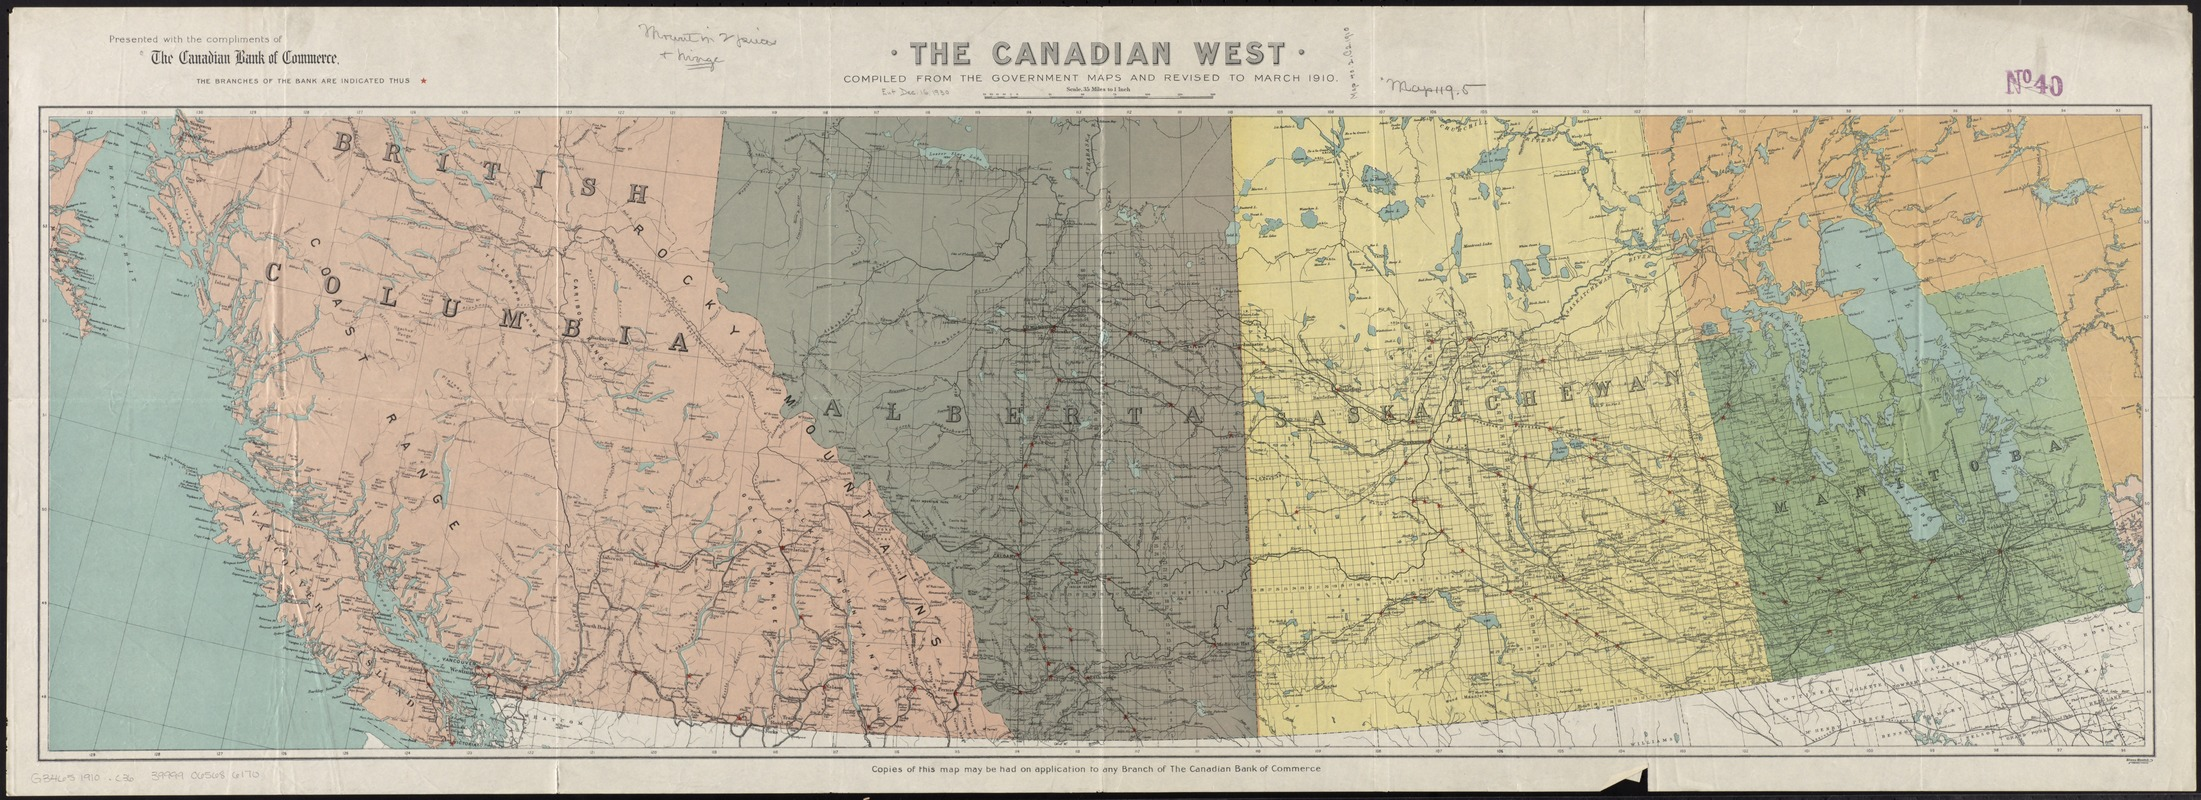 The Canadian west